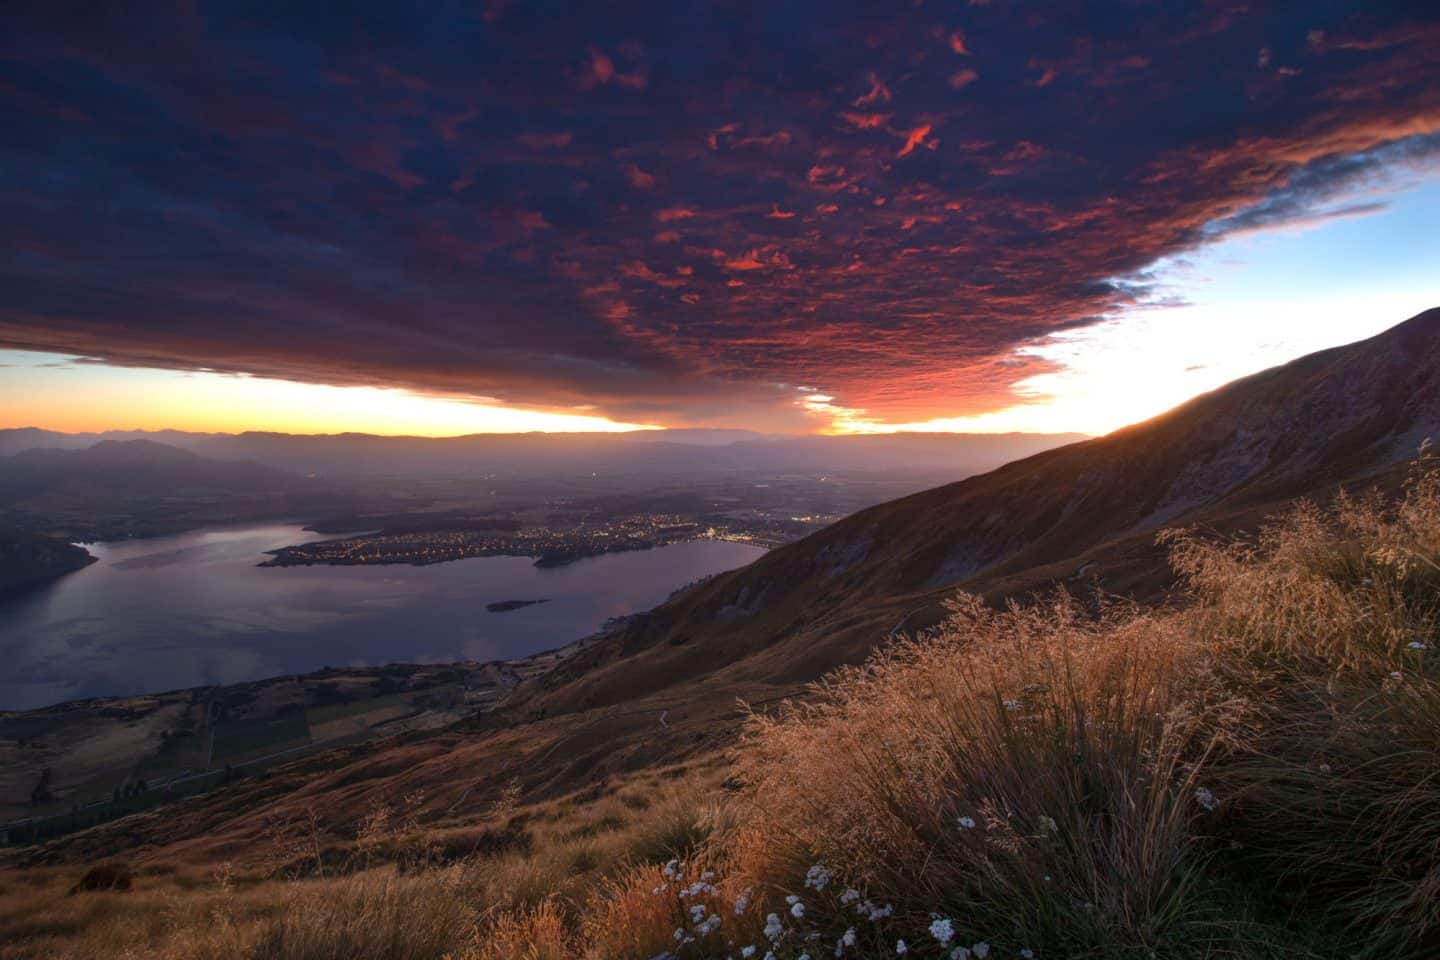 An intense sunrise on the track up to Roys Peak.